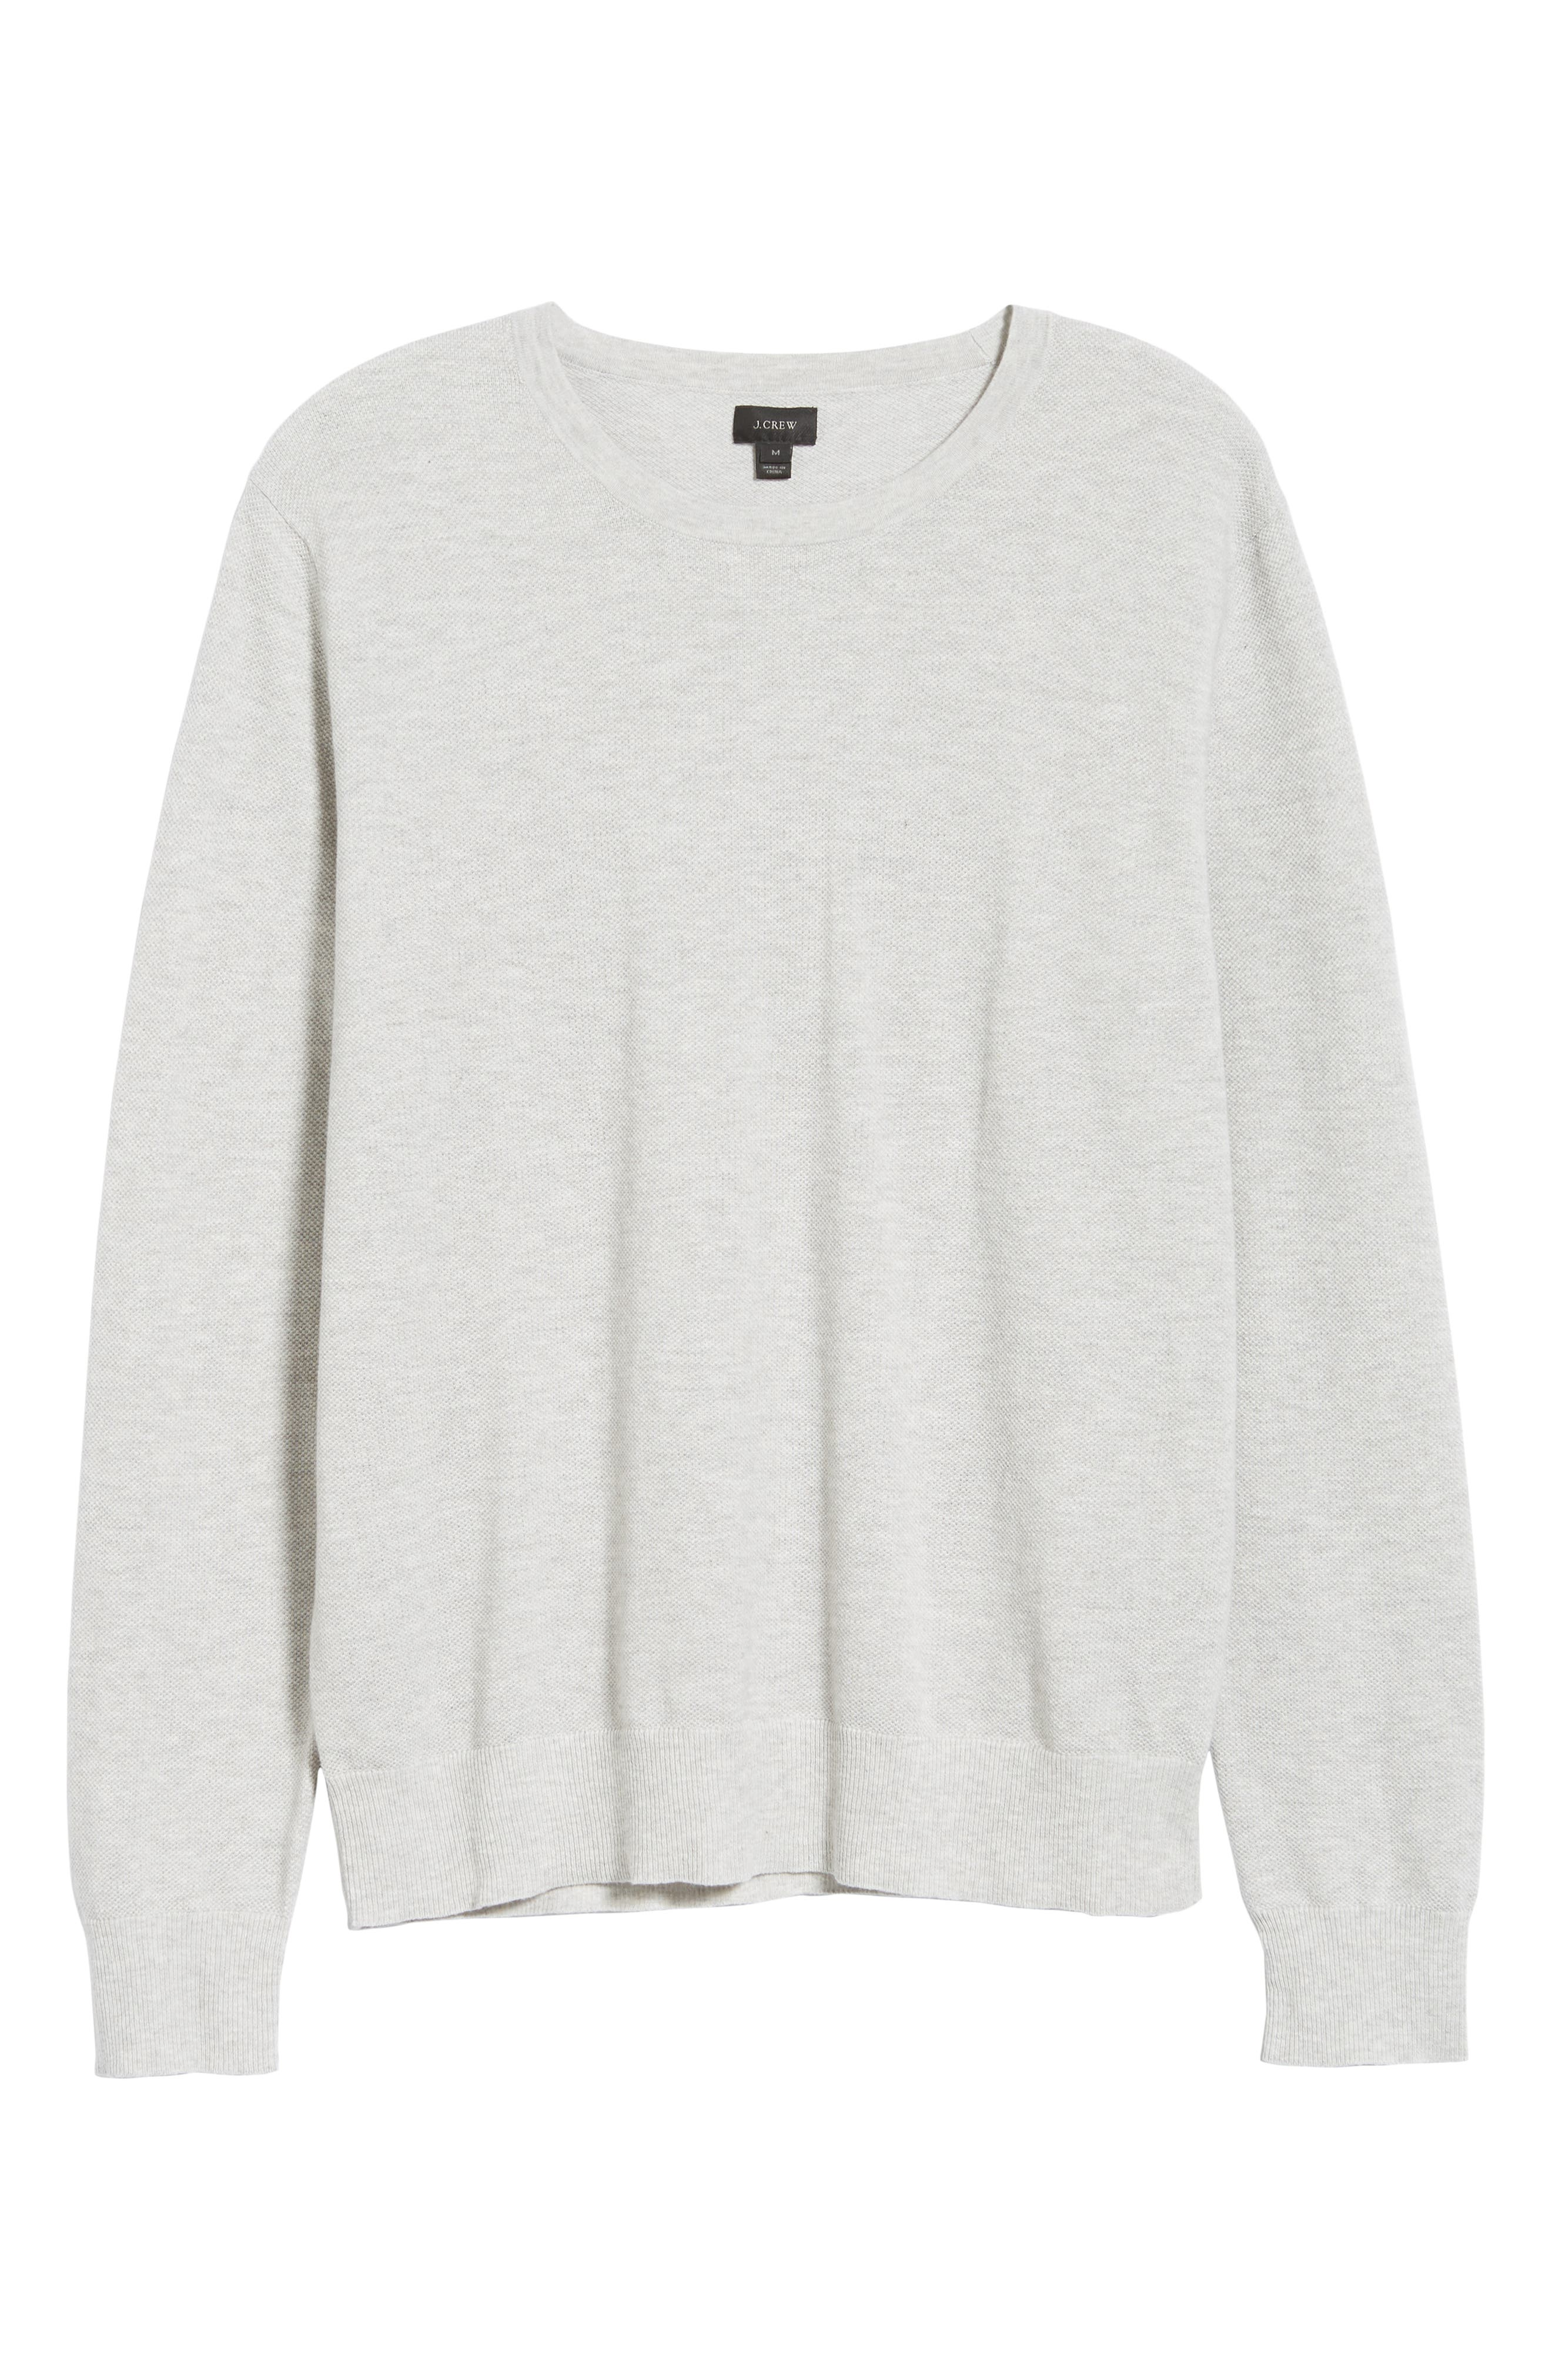 Cotton & Cashmere Piqué Crewneck Sweater,                             Alternate thumbnail 6, color,                             HEATHER SILVER